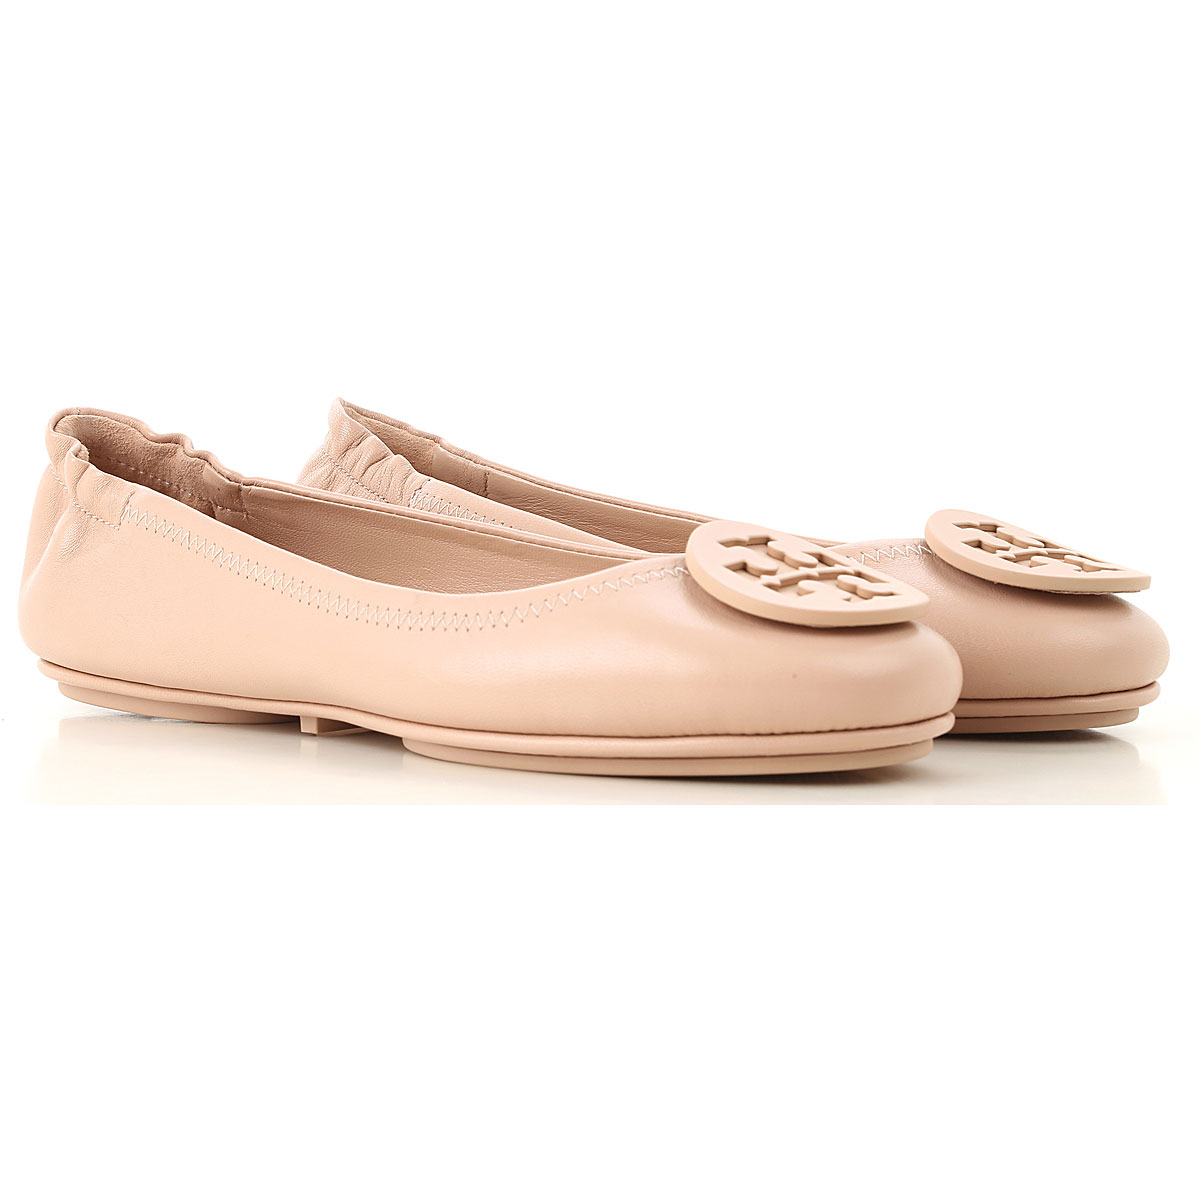 Image of Tory Burch Ballet Flats Ballerina Shoes for Women, Goan Sand, Leather, 2017, 10 7 8 9